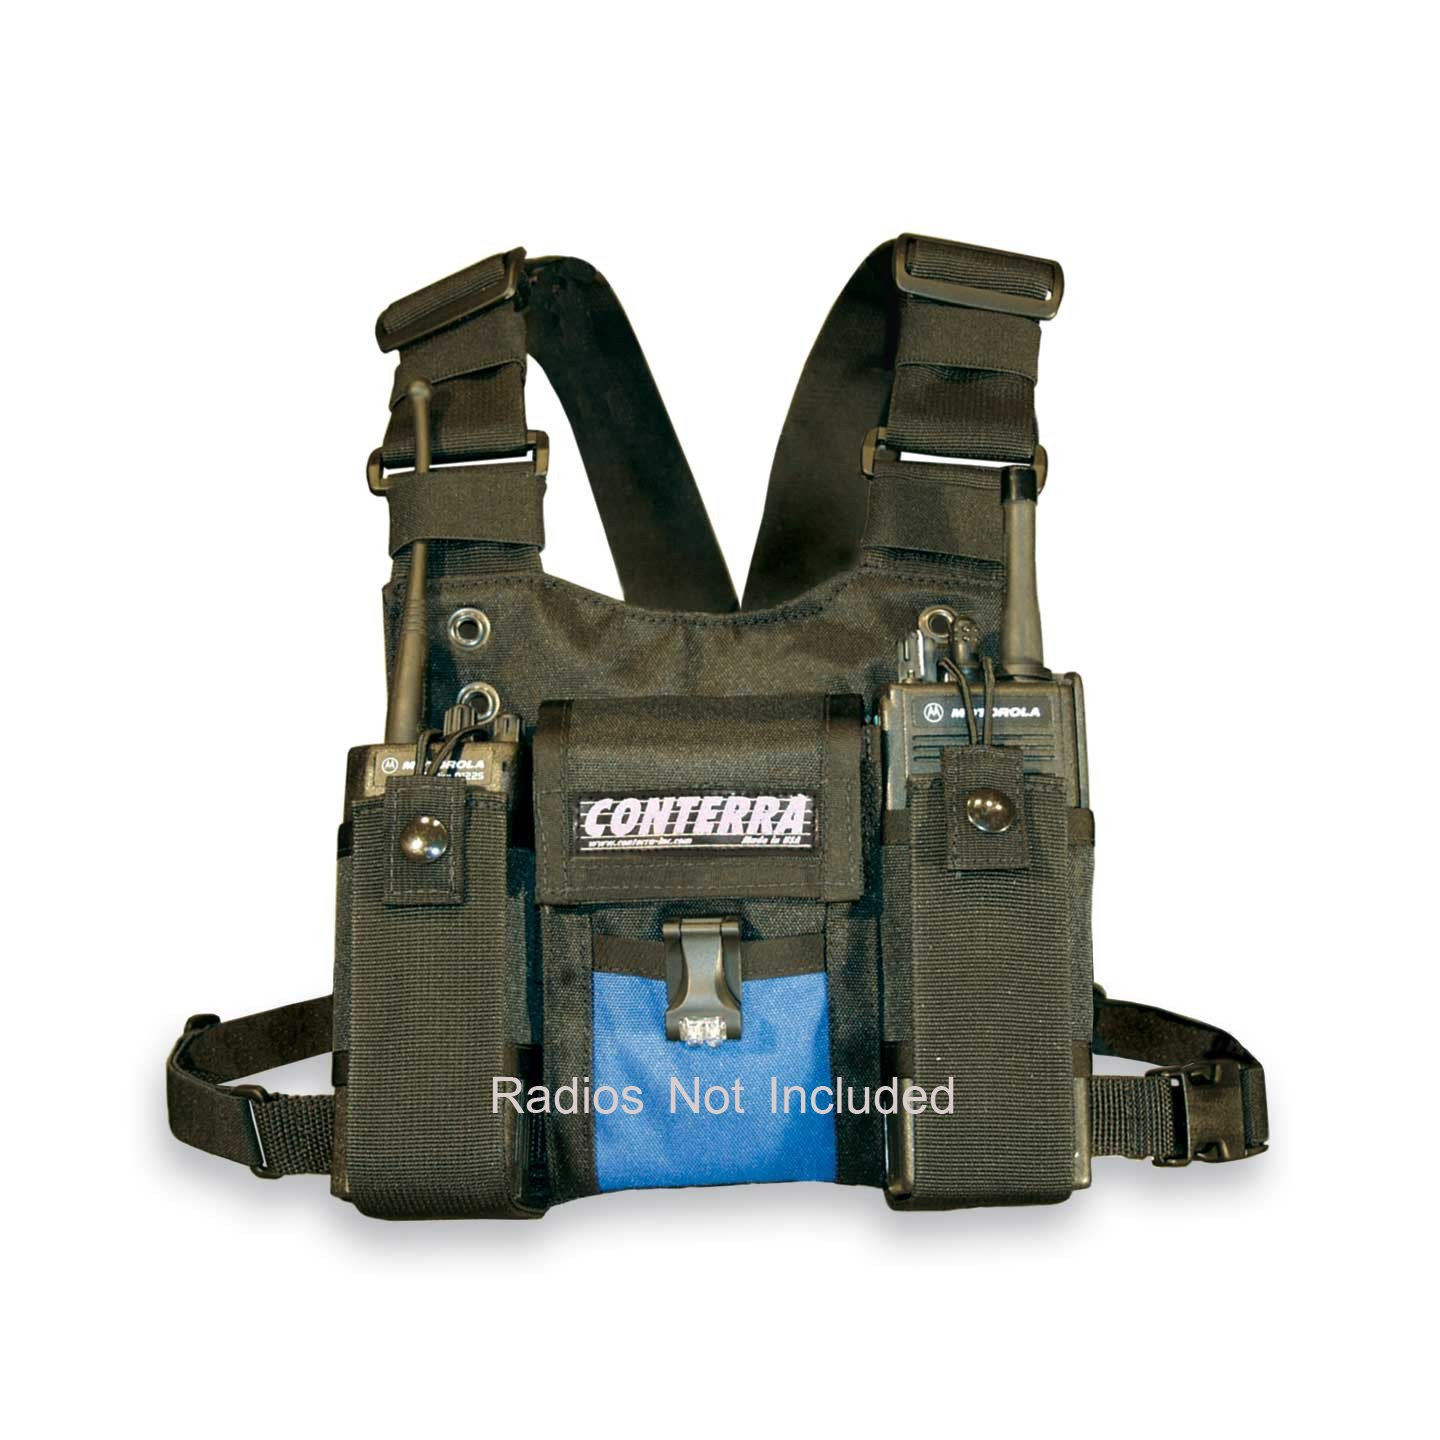 Conterra Double Adjusta-Pro II Radio Chest Harness